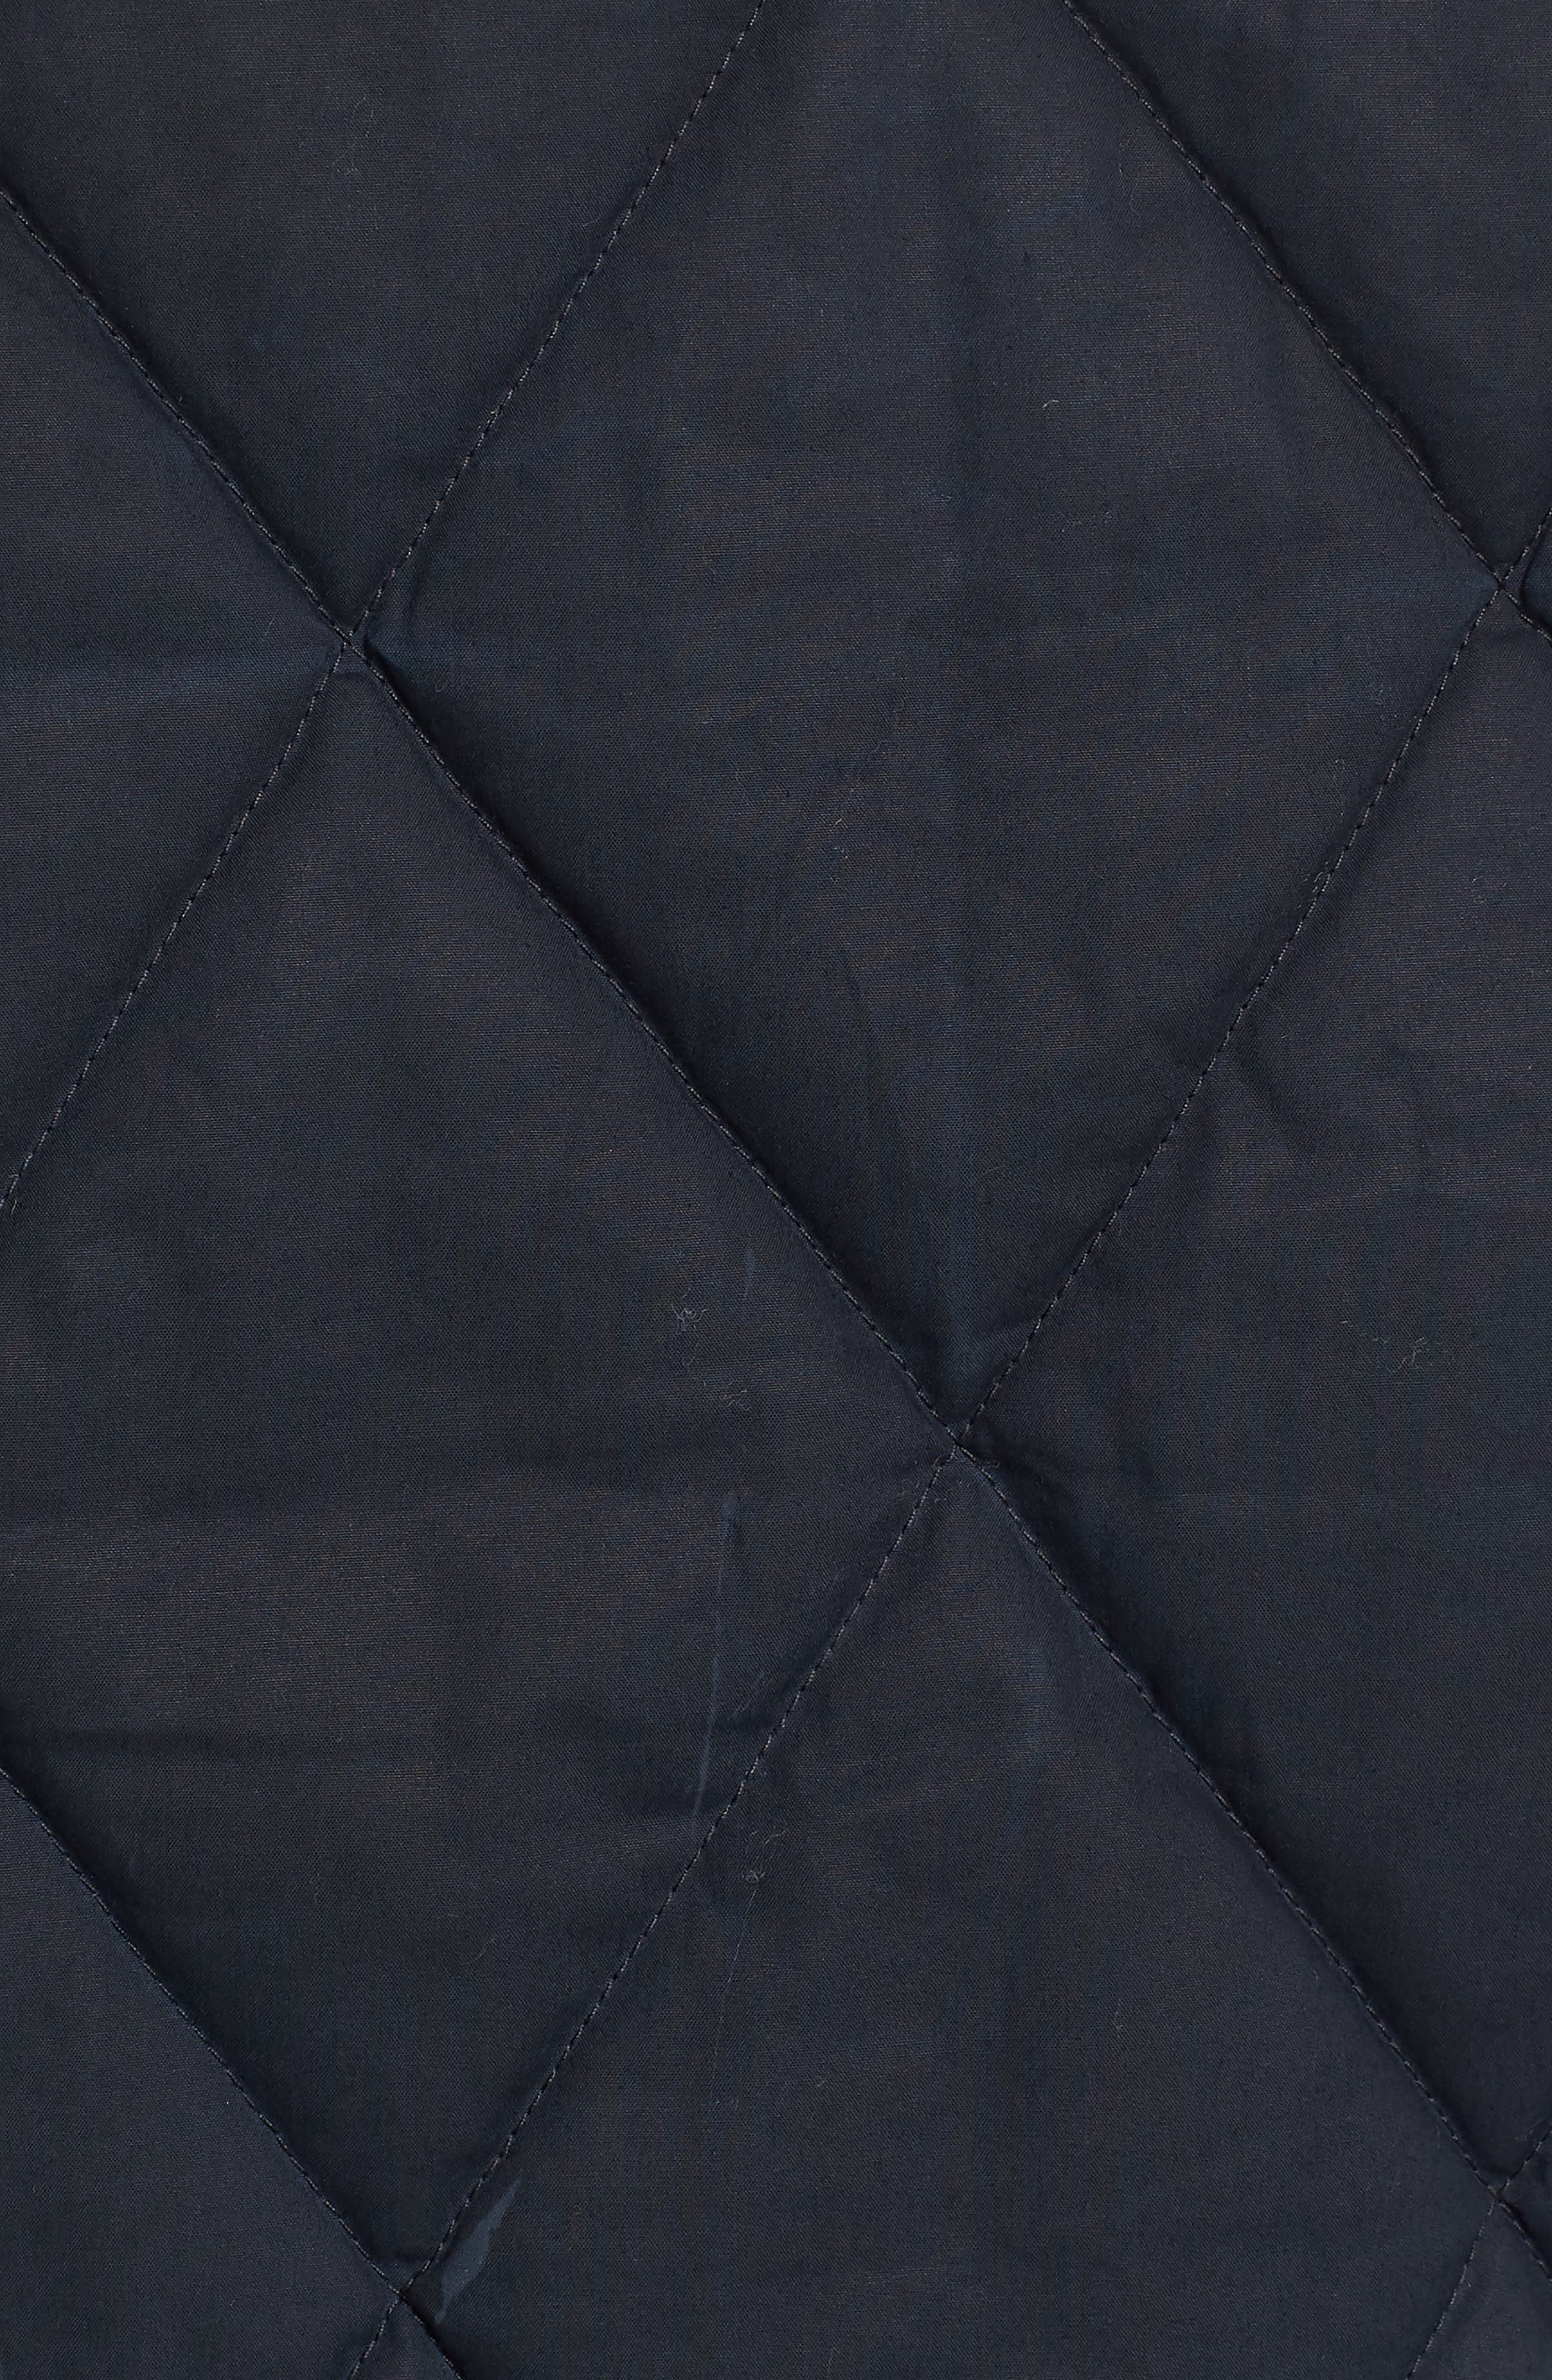 Hyder Quilted Water-Repellent Shirt Jacket,                             Alternate thumbnail 6, color,                             FADED NAVY